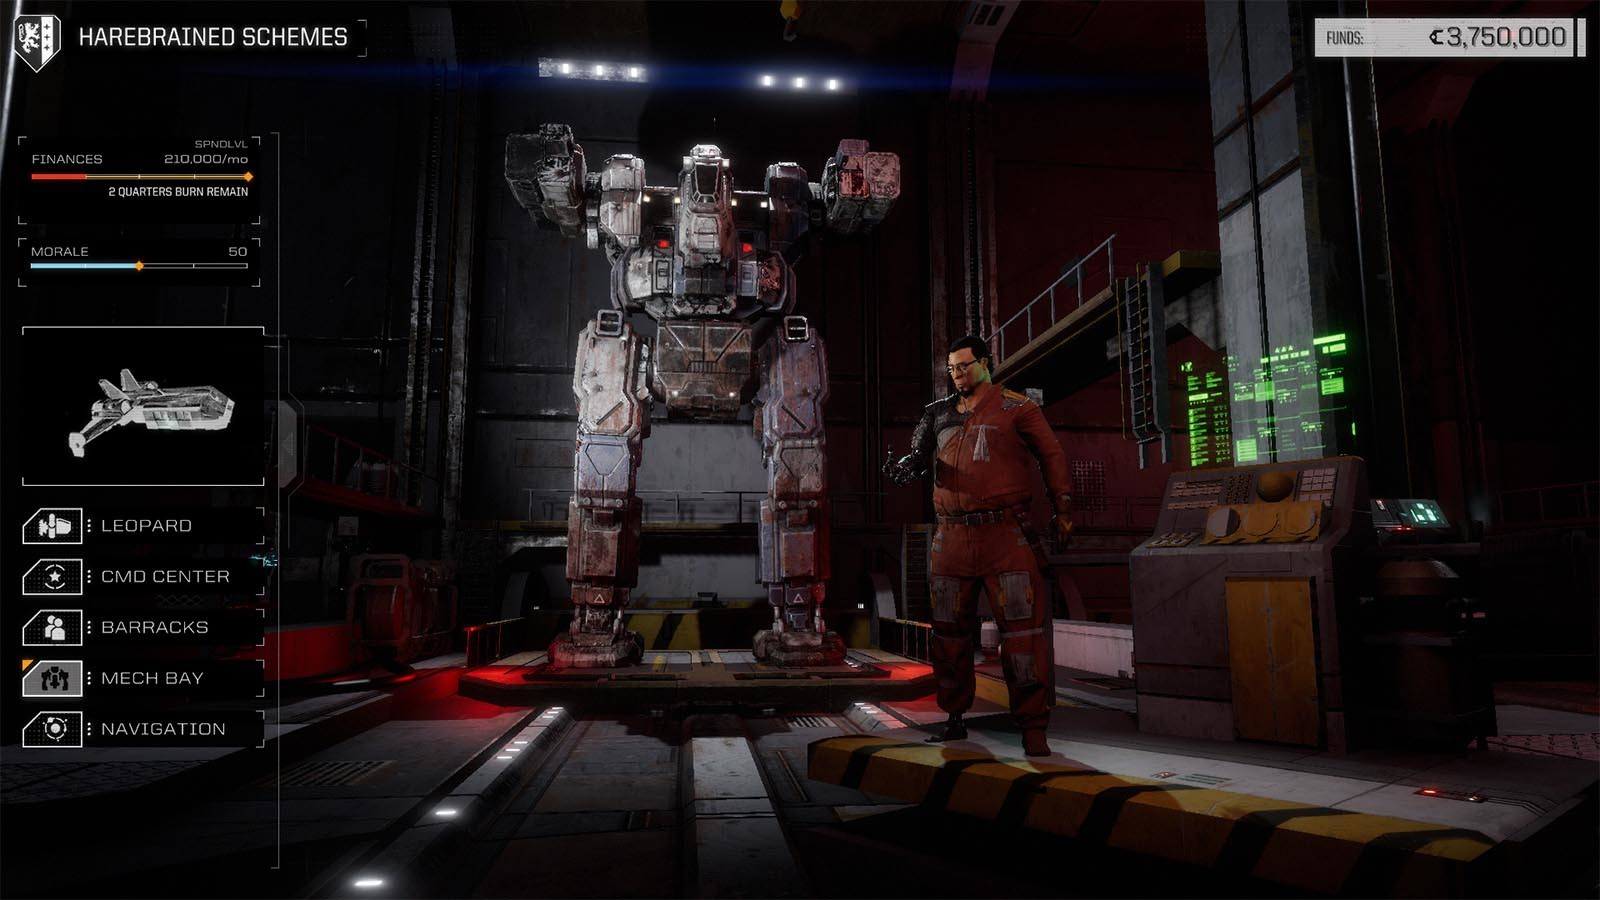 BATTLETECH [Steam CD Key] for PC, Mac and Linux - Buy now